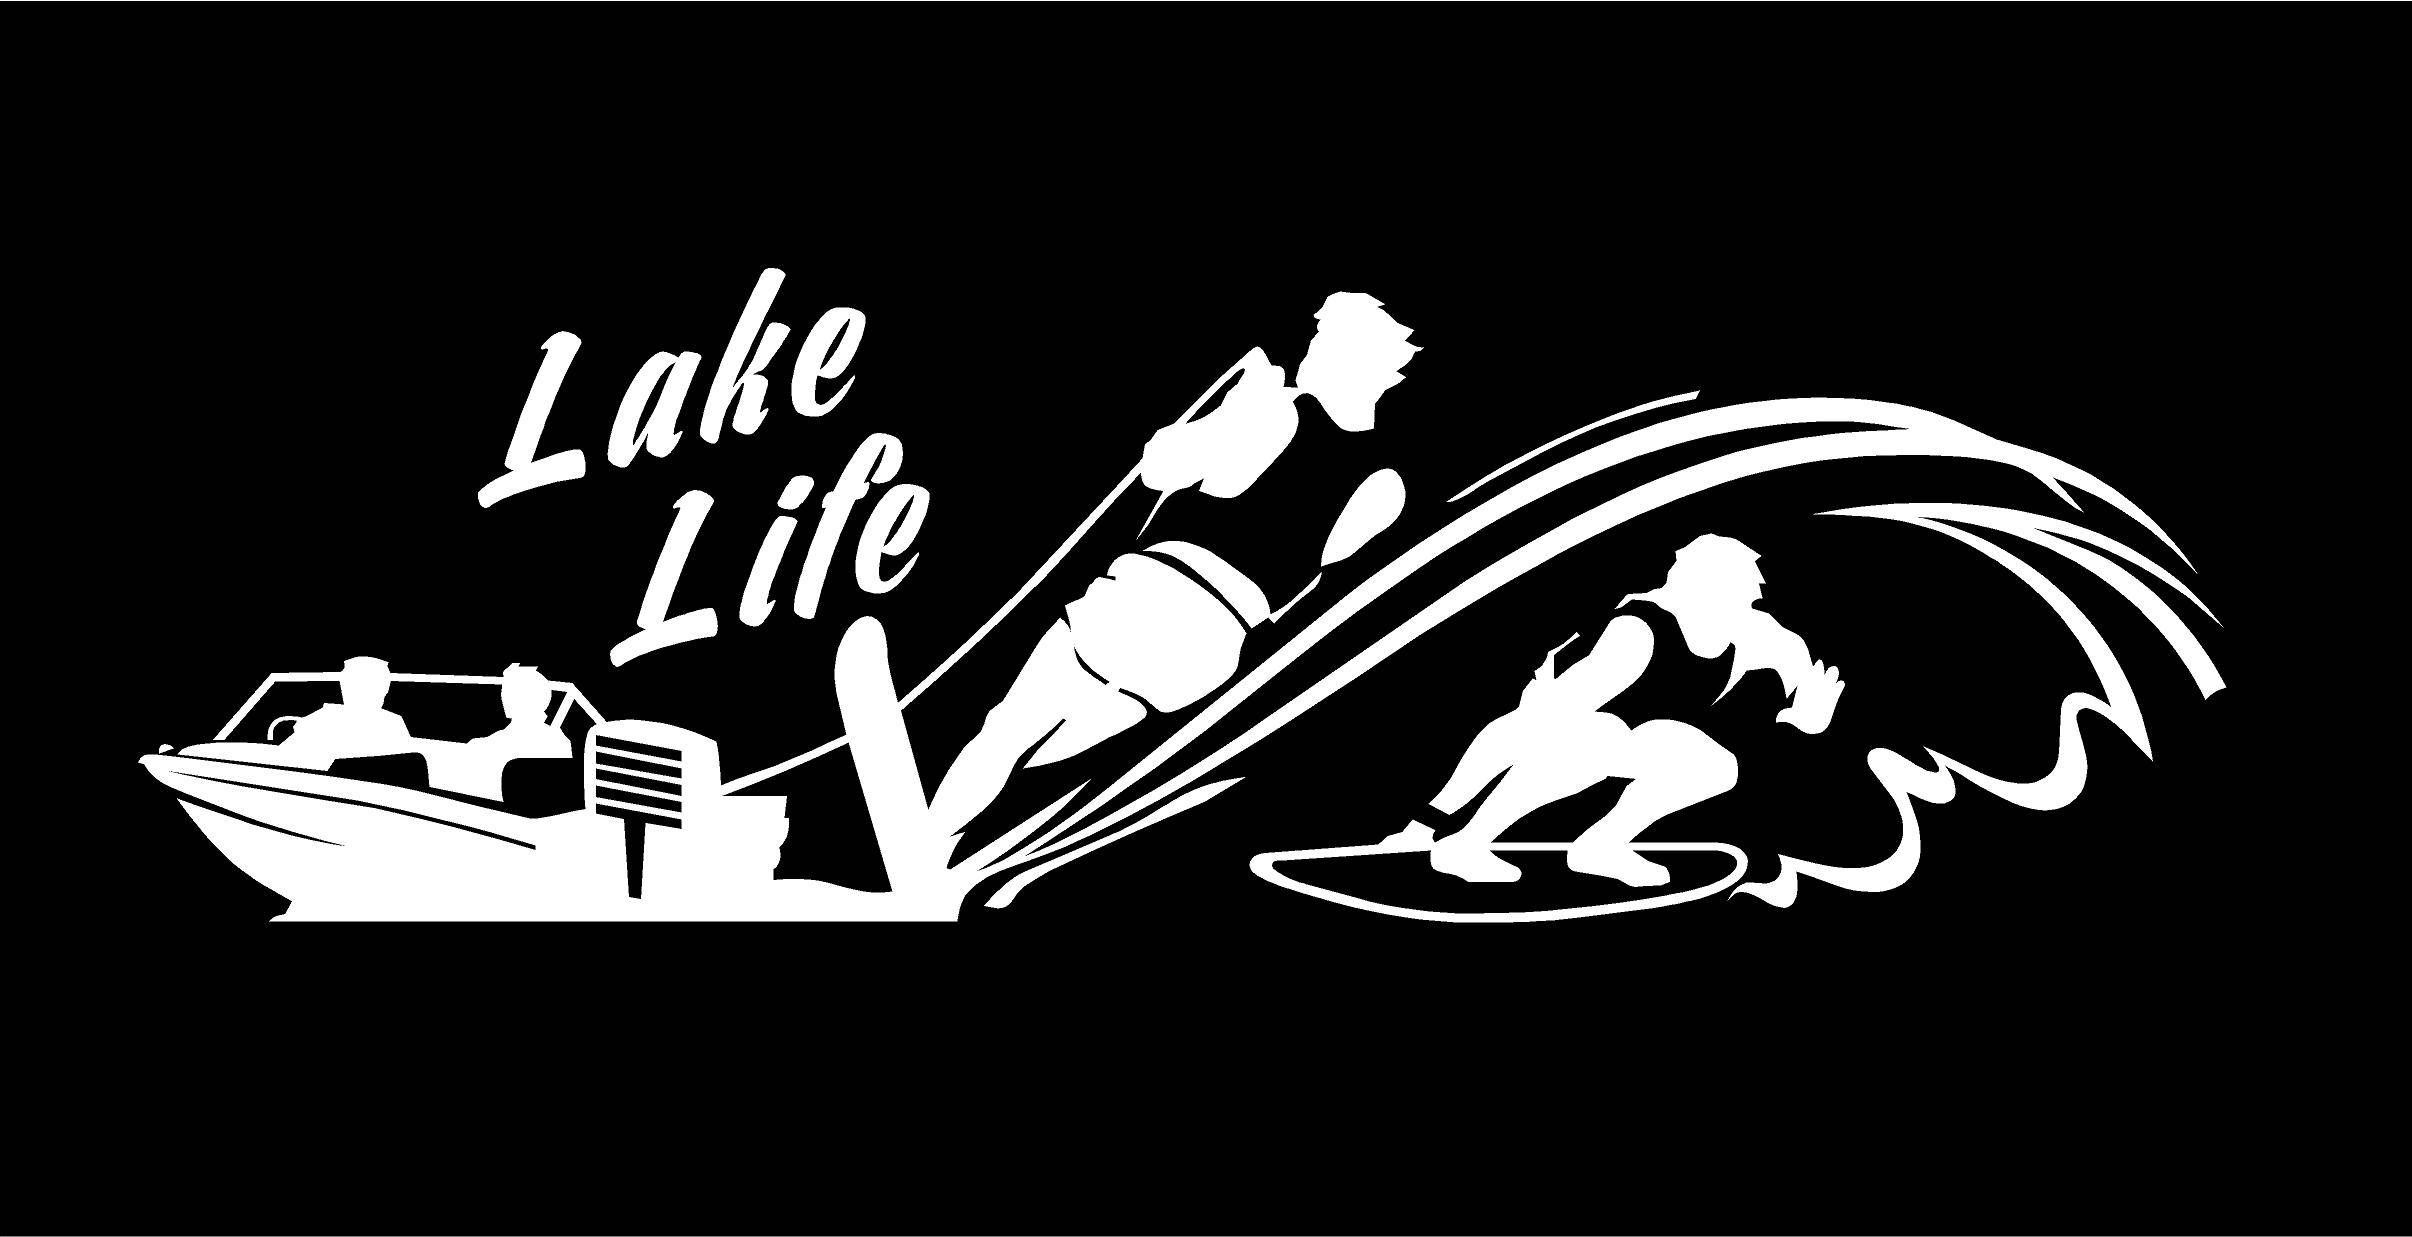 Lake Life Decal Water Skier decal Wake surfer decal Boat